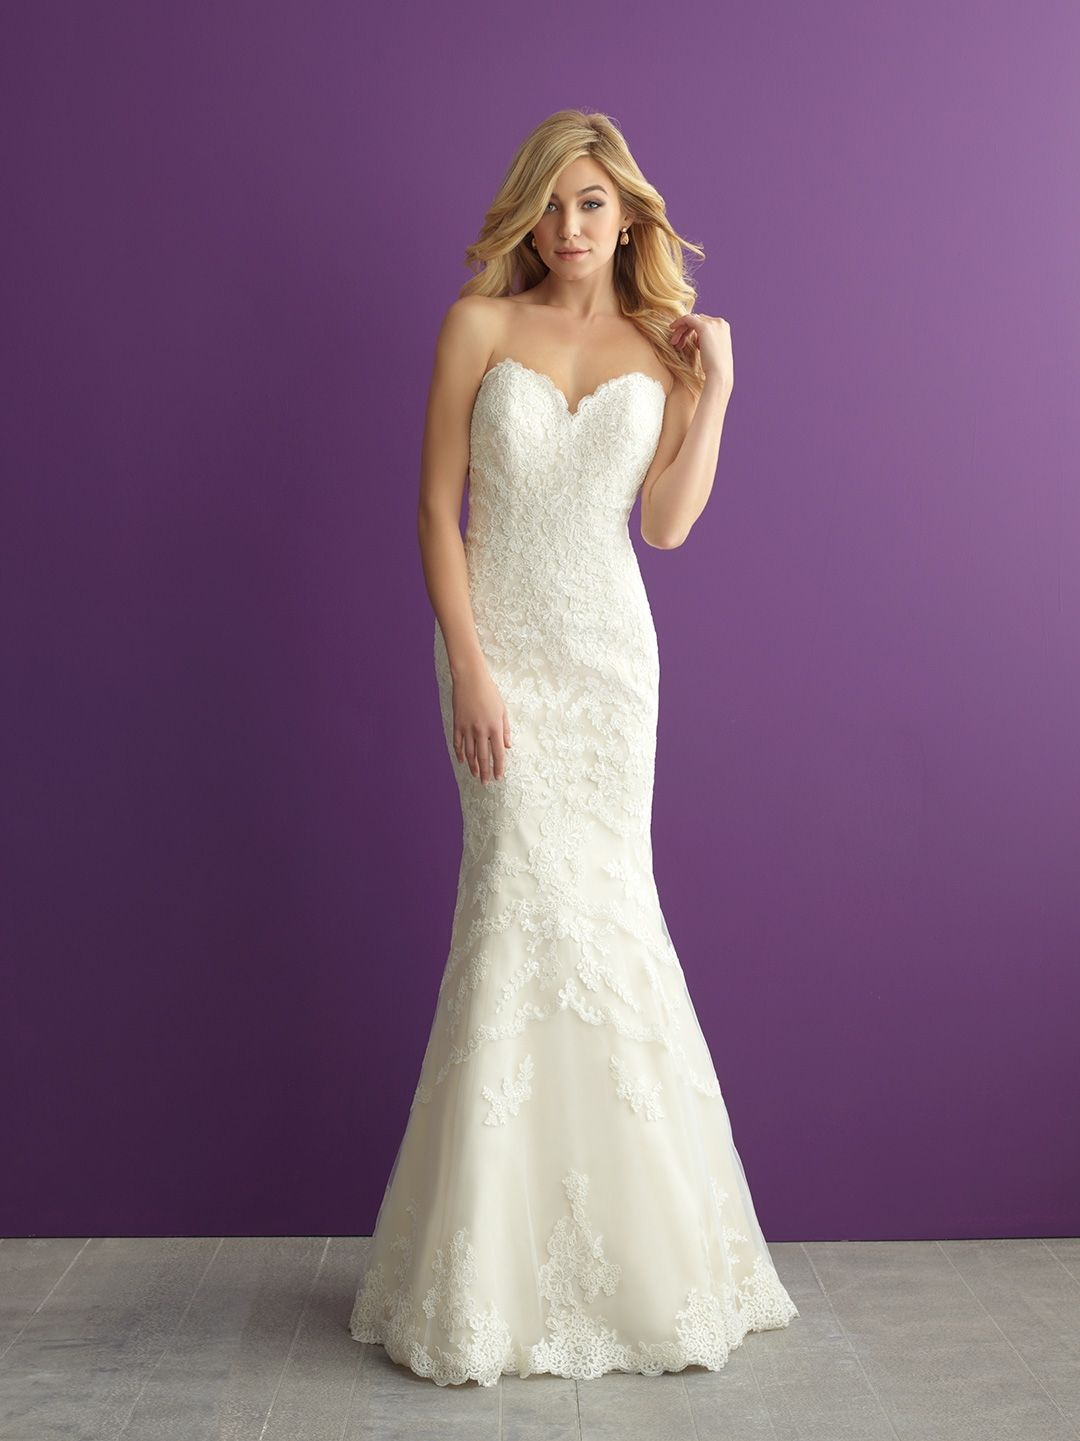 The Highlight Of This Strapless Lace Gown Is An Incredible Train